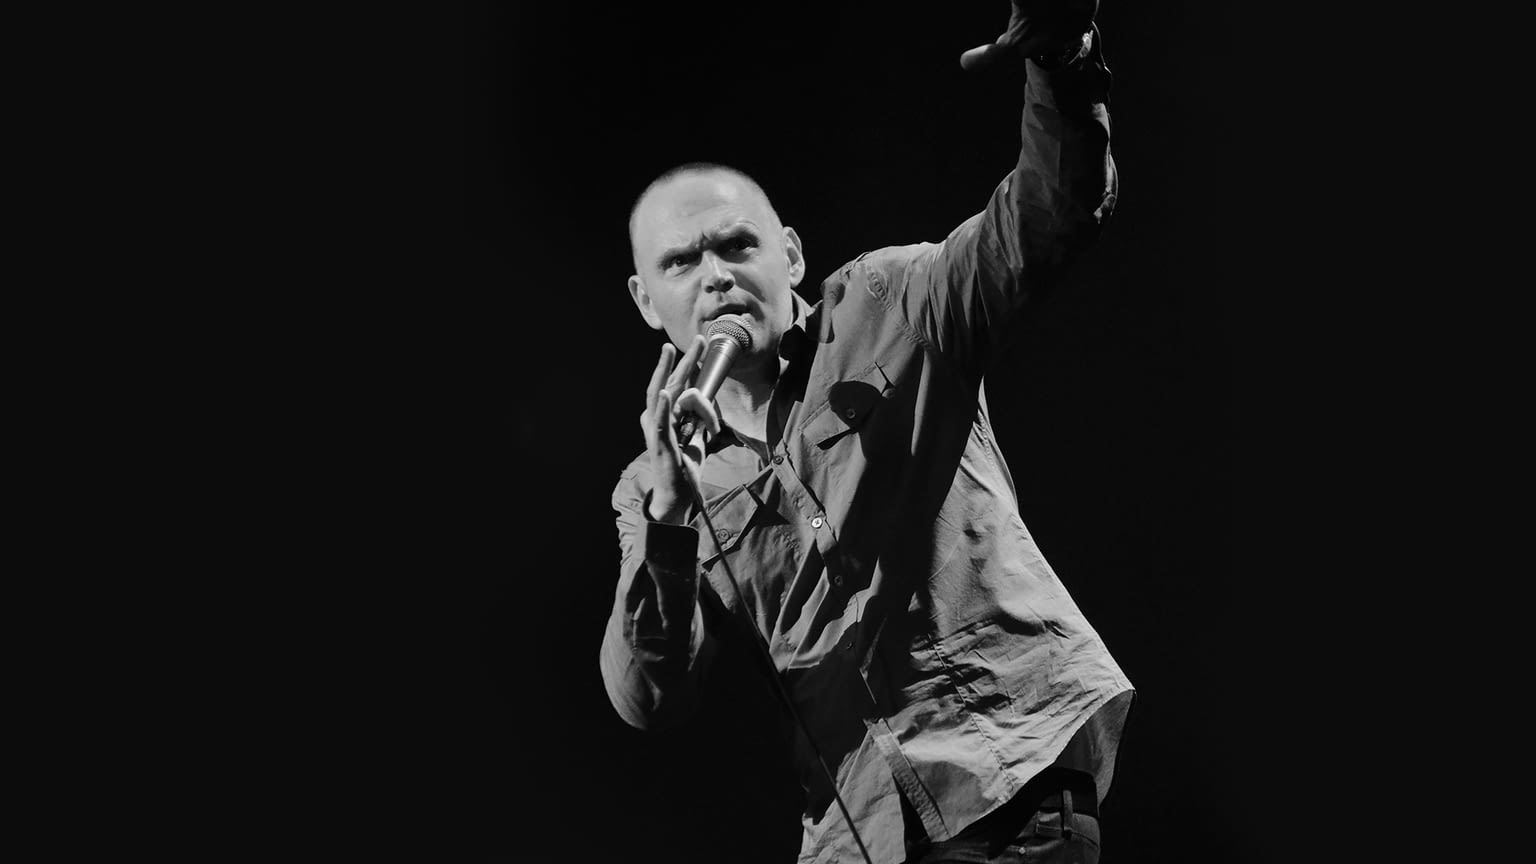 Bill-Burr-Im-Sorry-You-Feel-That-Way-2014.jpg